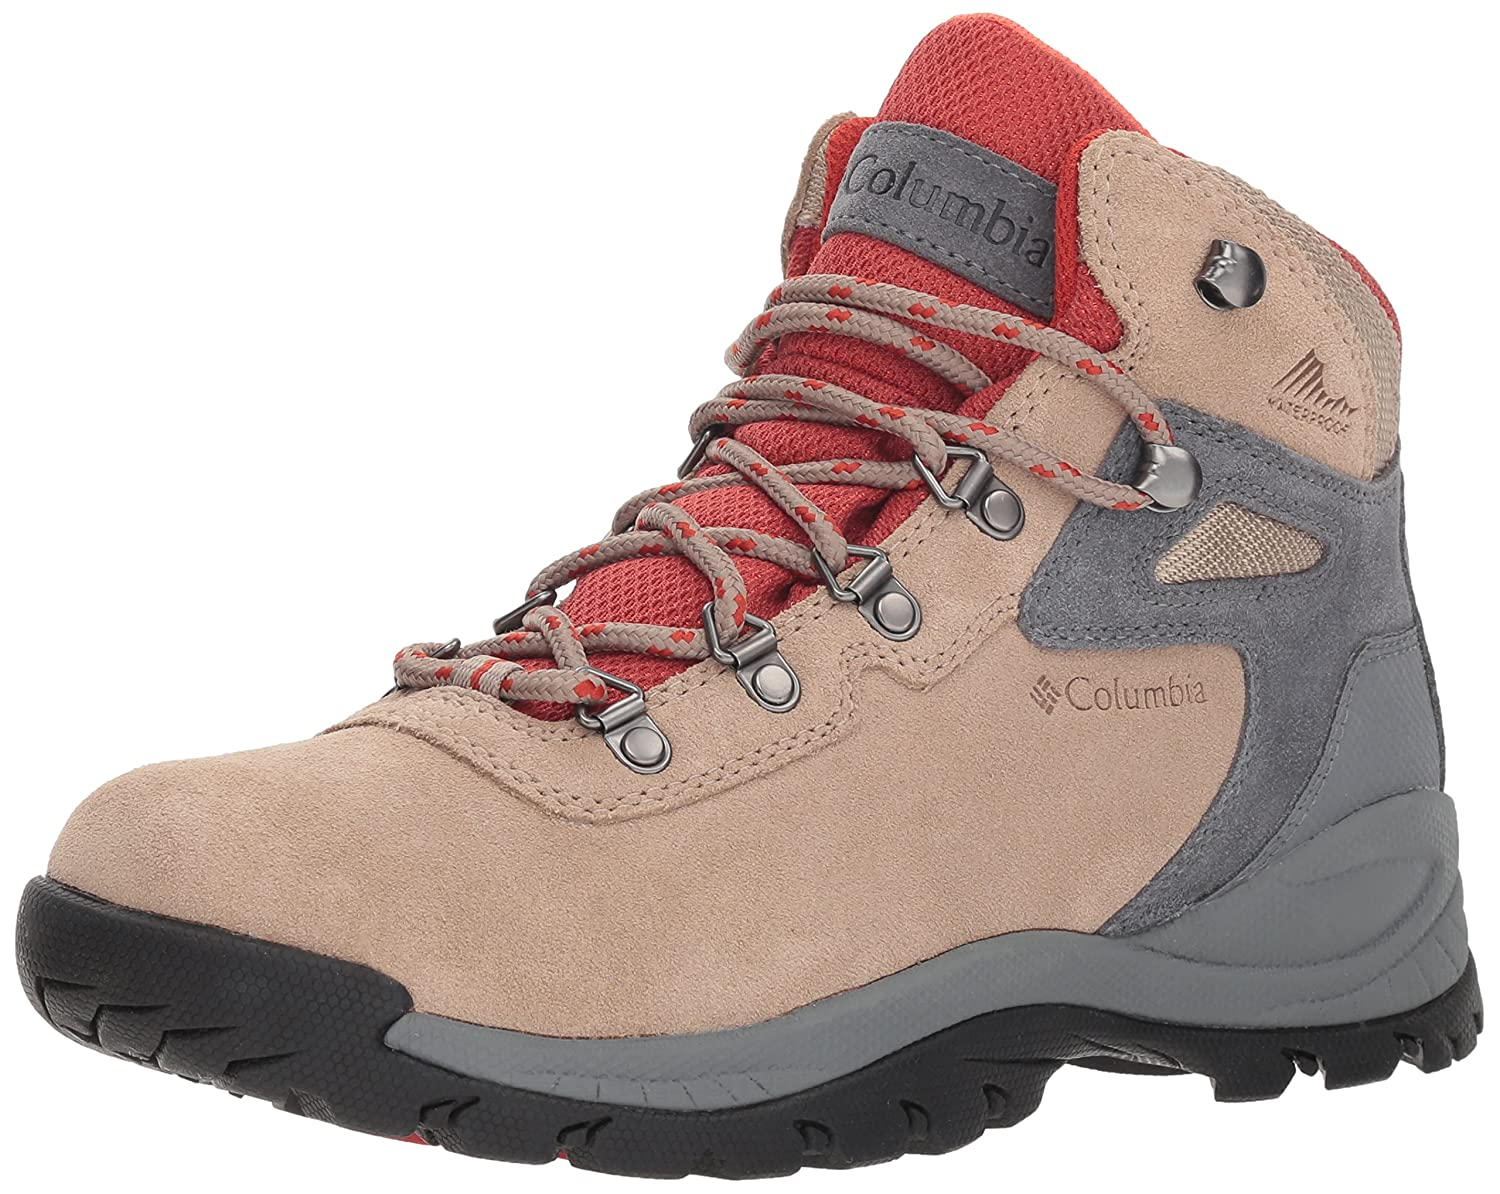 Columbia Women's Newton Ridge Plus Waterproof Amped Hiking Boot B0788GFPV7 Flame 9 M US|Oxford Tan, Flame B0788GFPV7 5b06e3